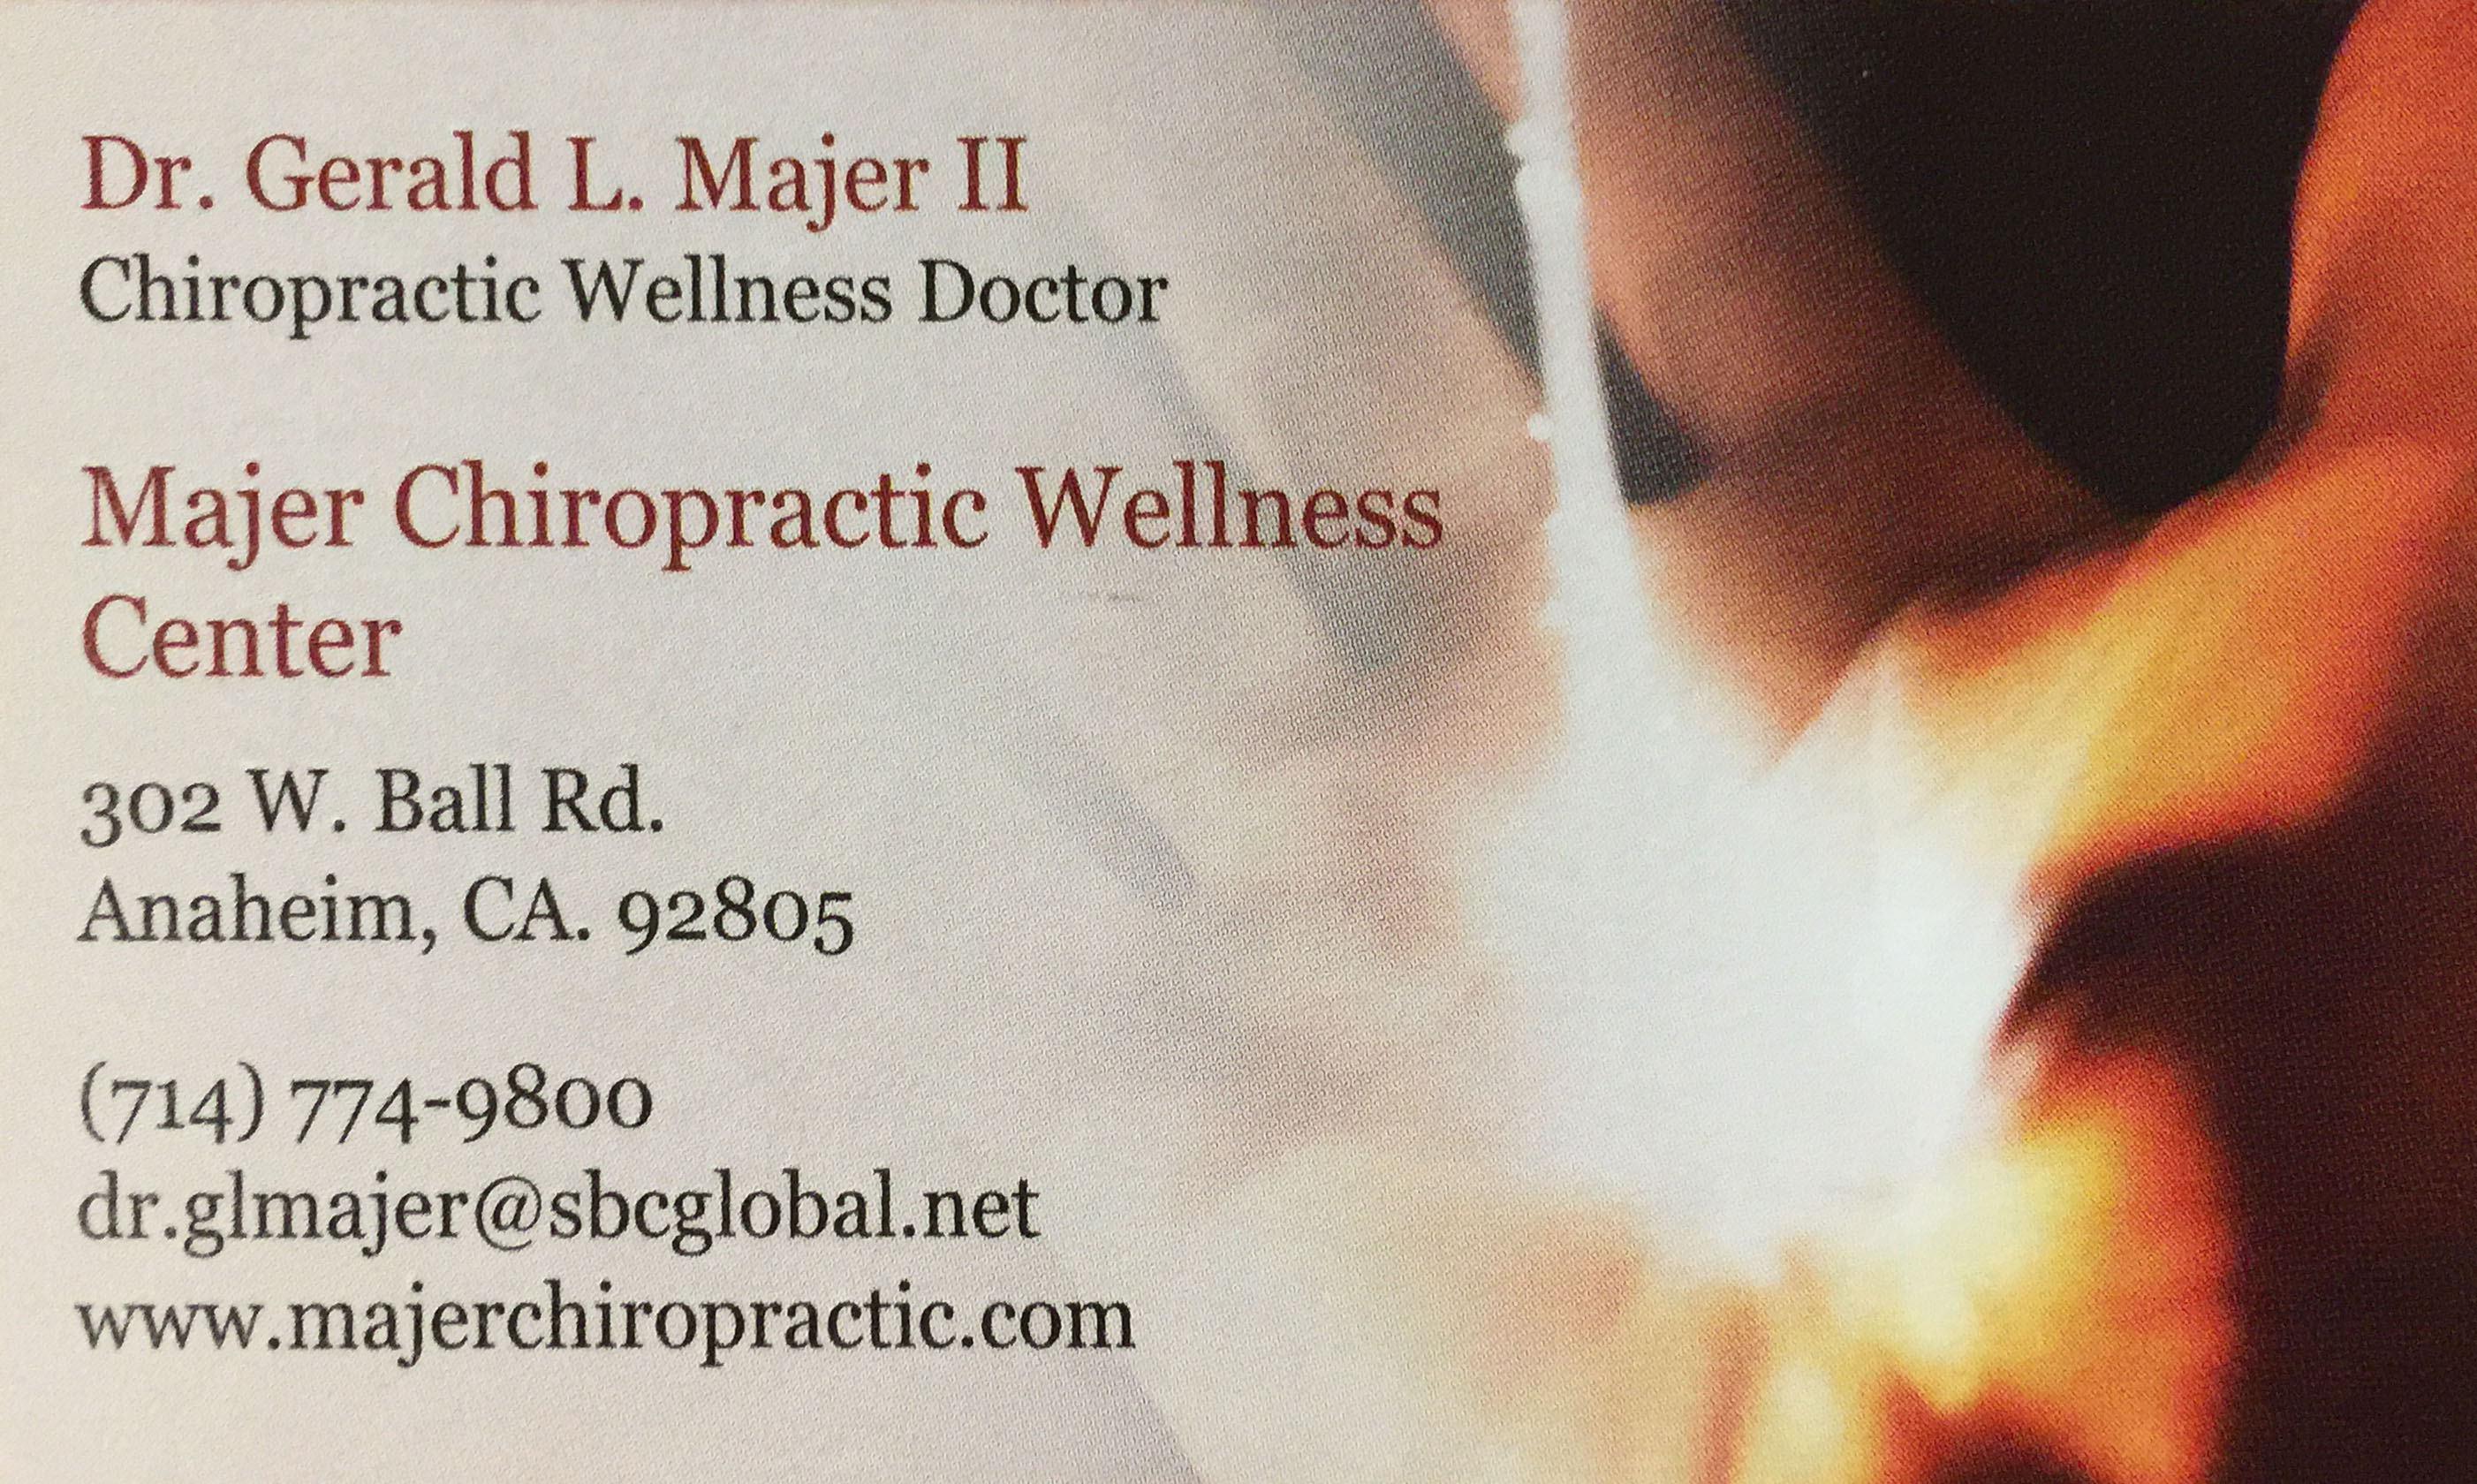 Majer Chiropratic Wellness Center